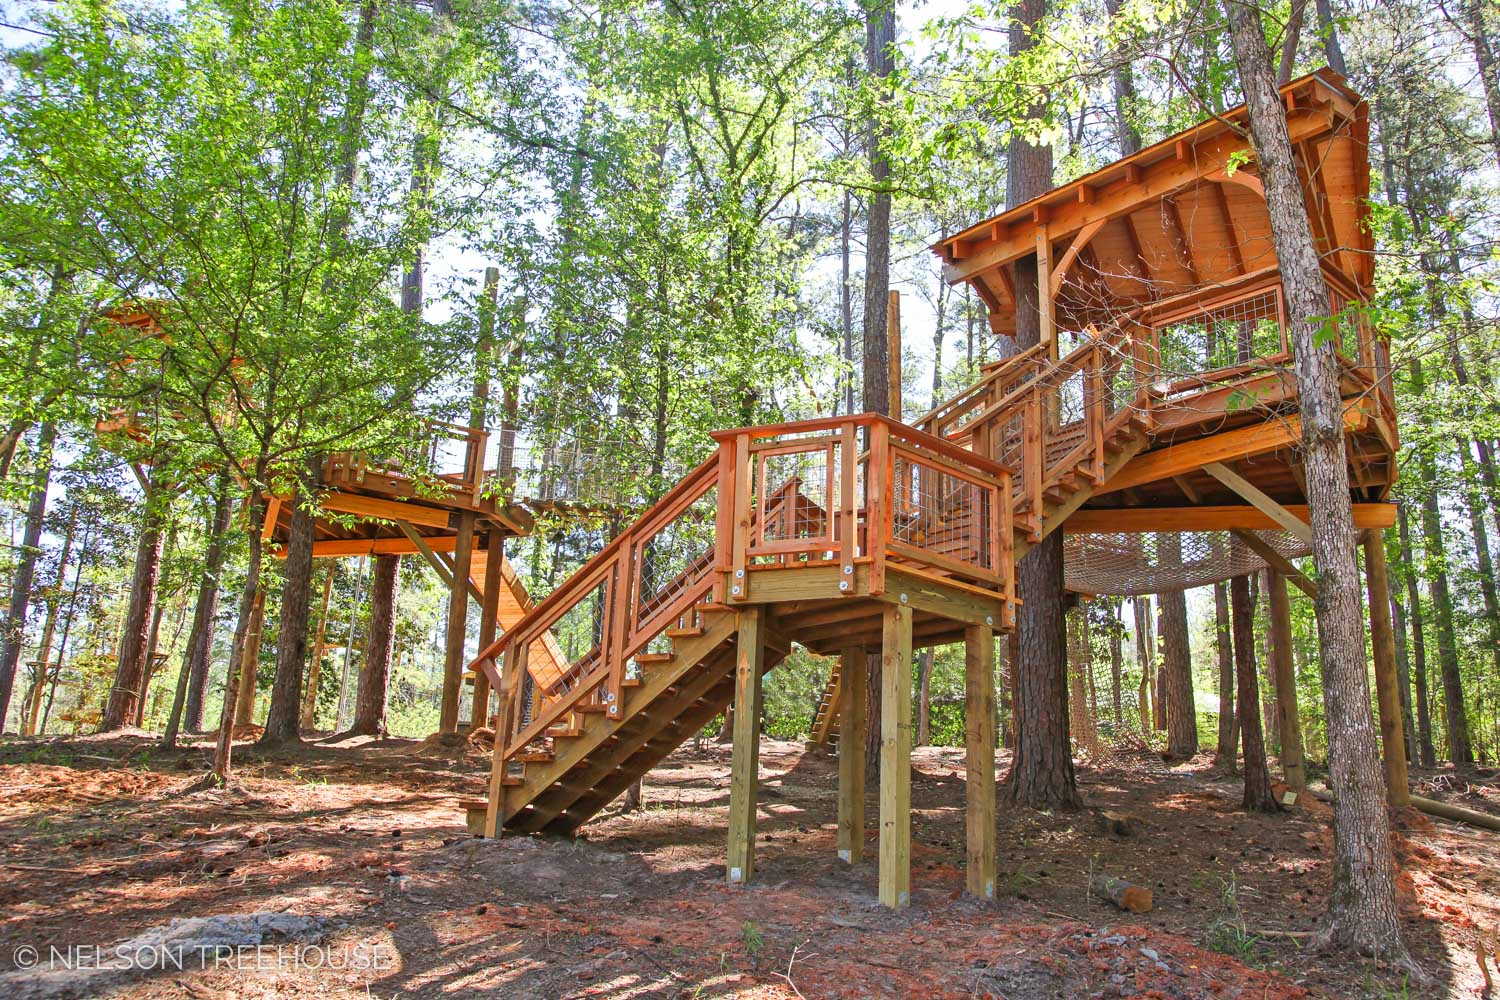 Camp Cho-Yeh Treehouse - Livingston, TX